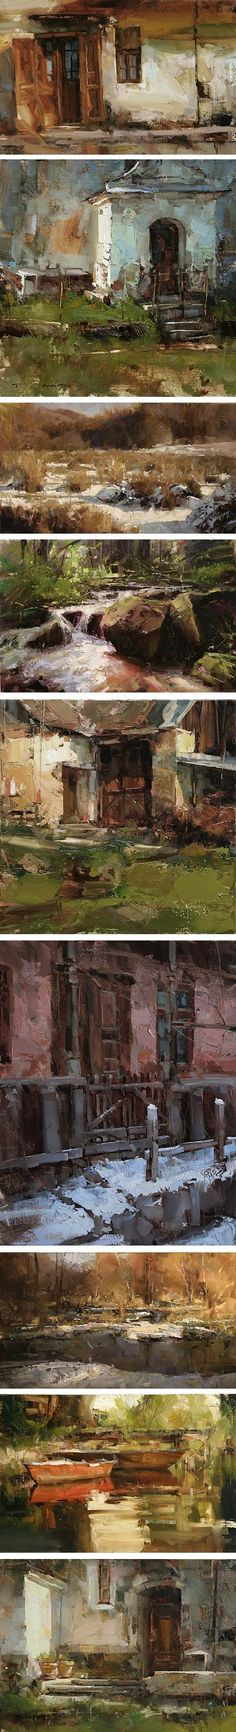 Tibor Nagy is an artist from Slovakia who paints his plein air landscapes and townscapes with brusque, rough edged shards and chunks of color